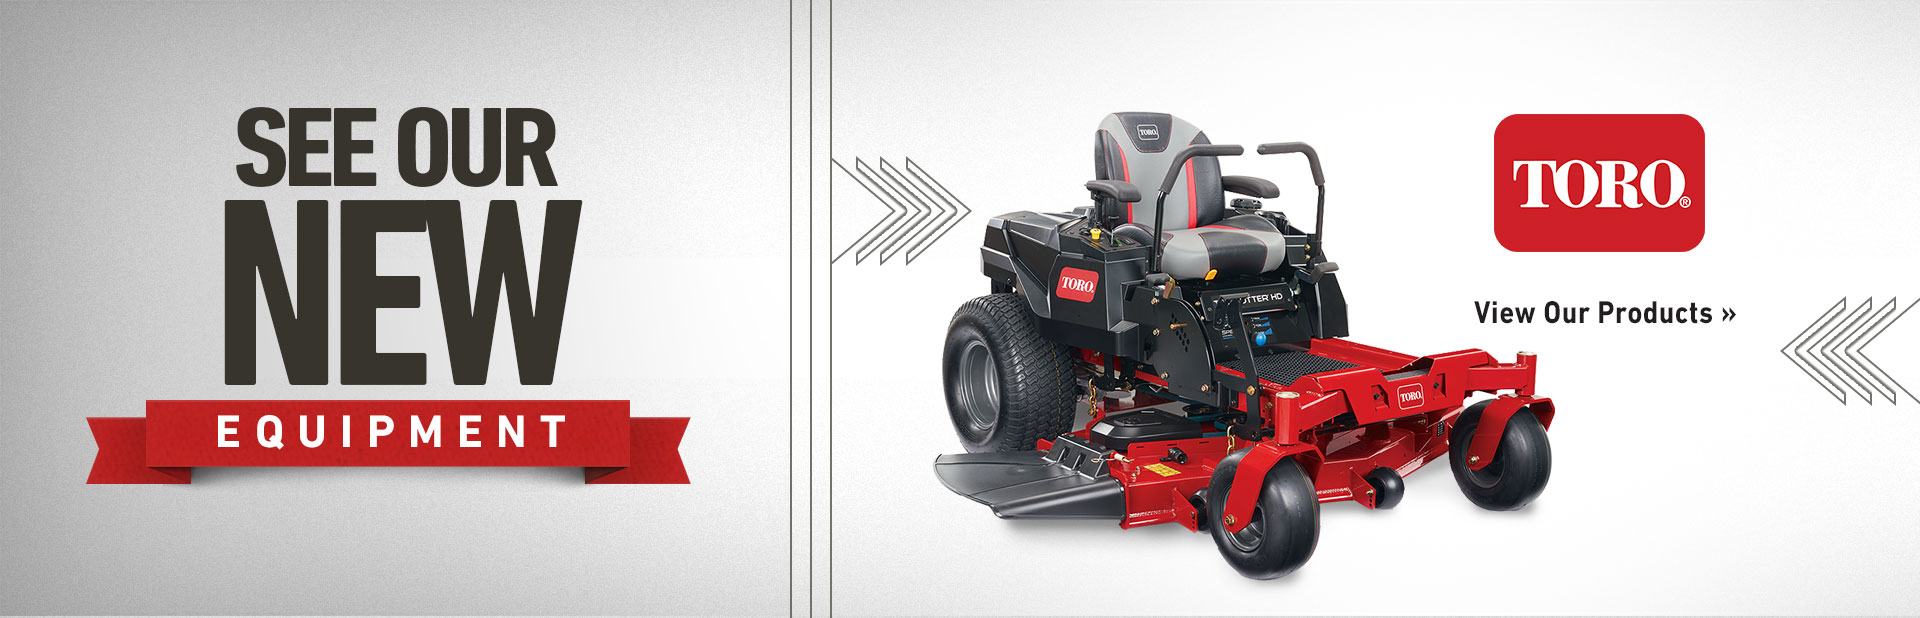 Home Wildwood Mower & Saw Inc  Wildwood, FL (352) 748-2305